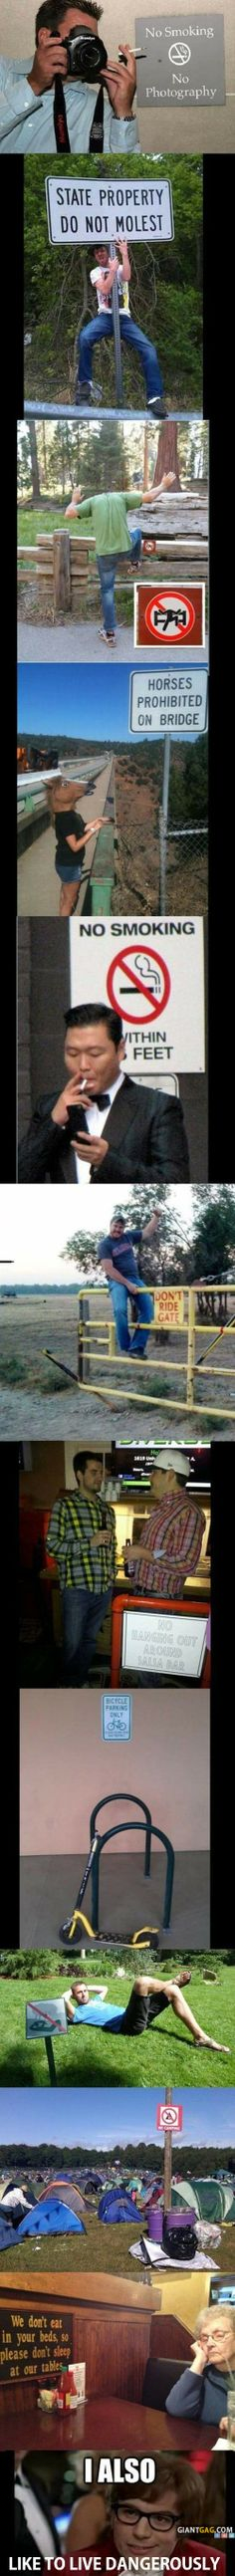 I Also Like To Live Dangerously (Compilation), click the link to view more funny pictures !